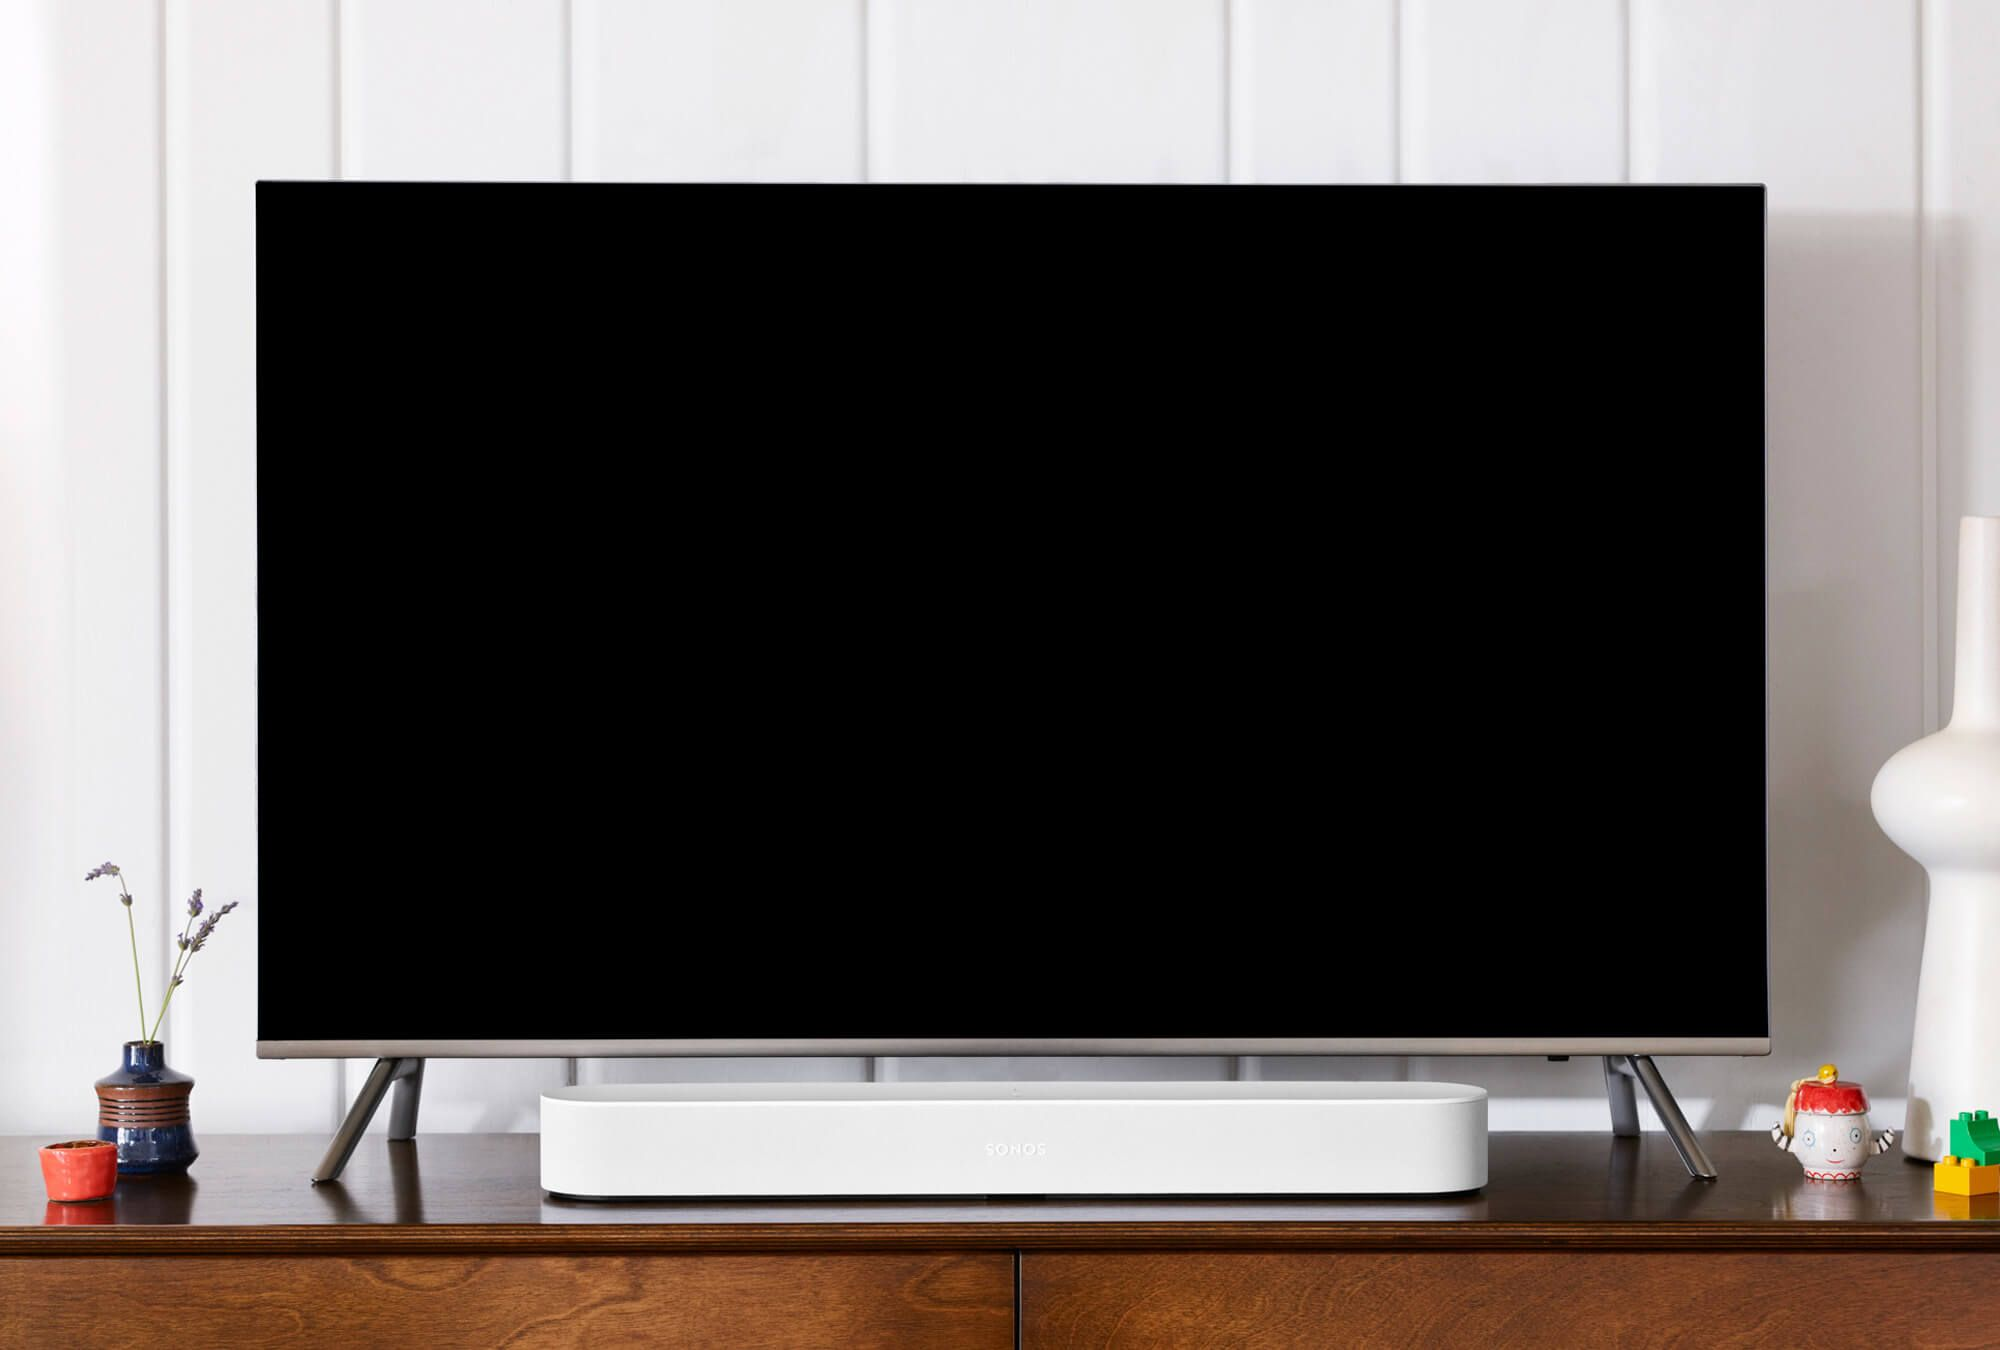 Samsung The Frame TV